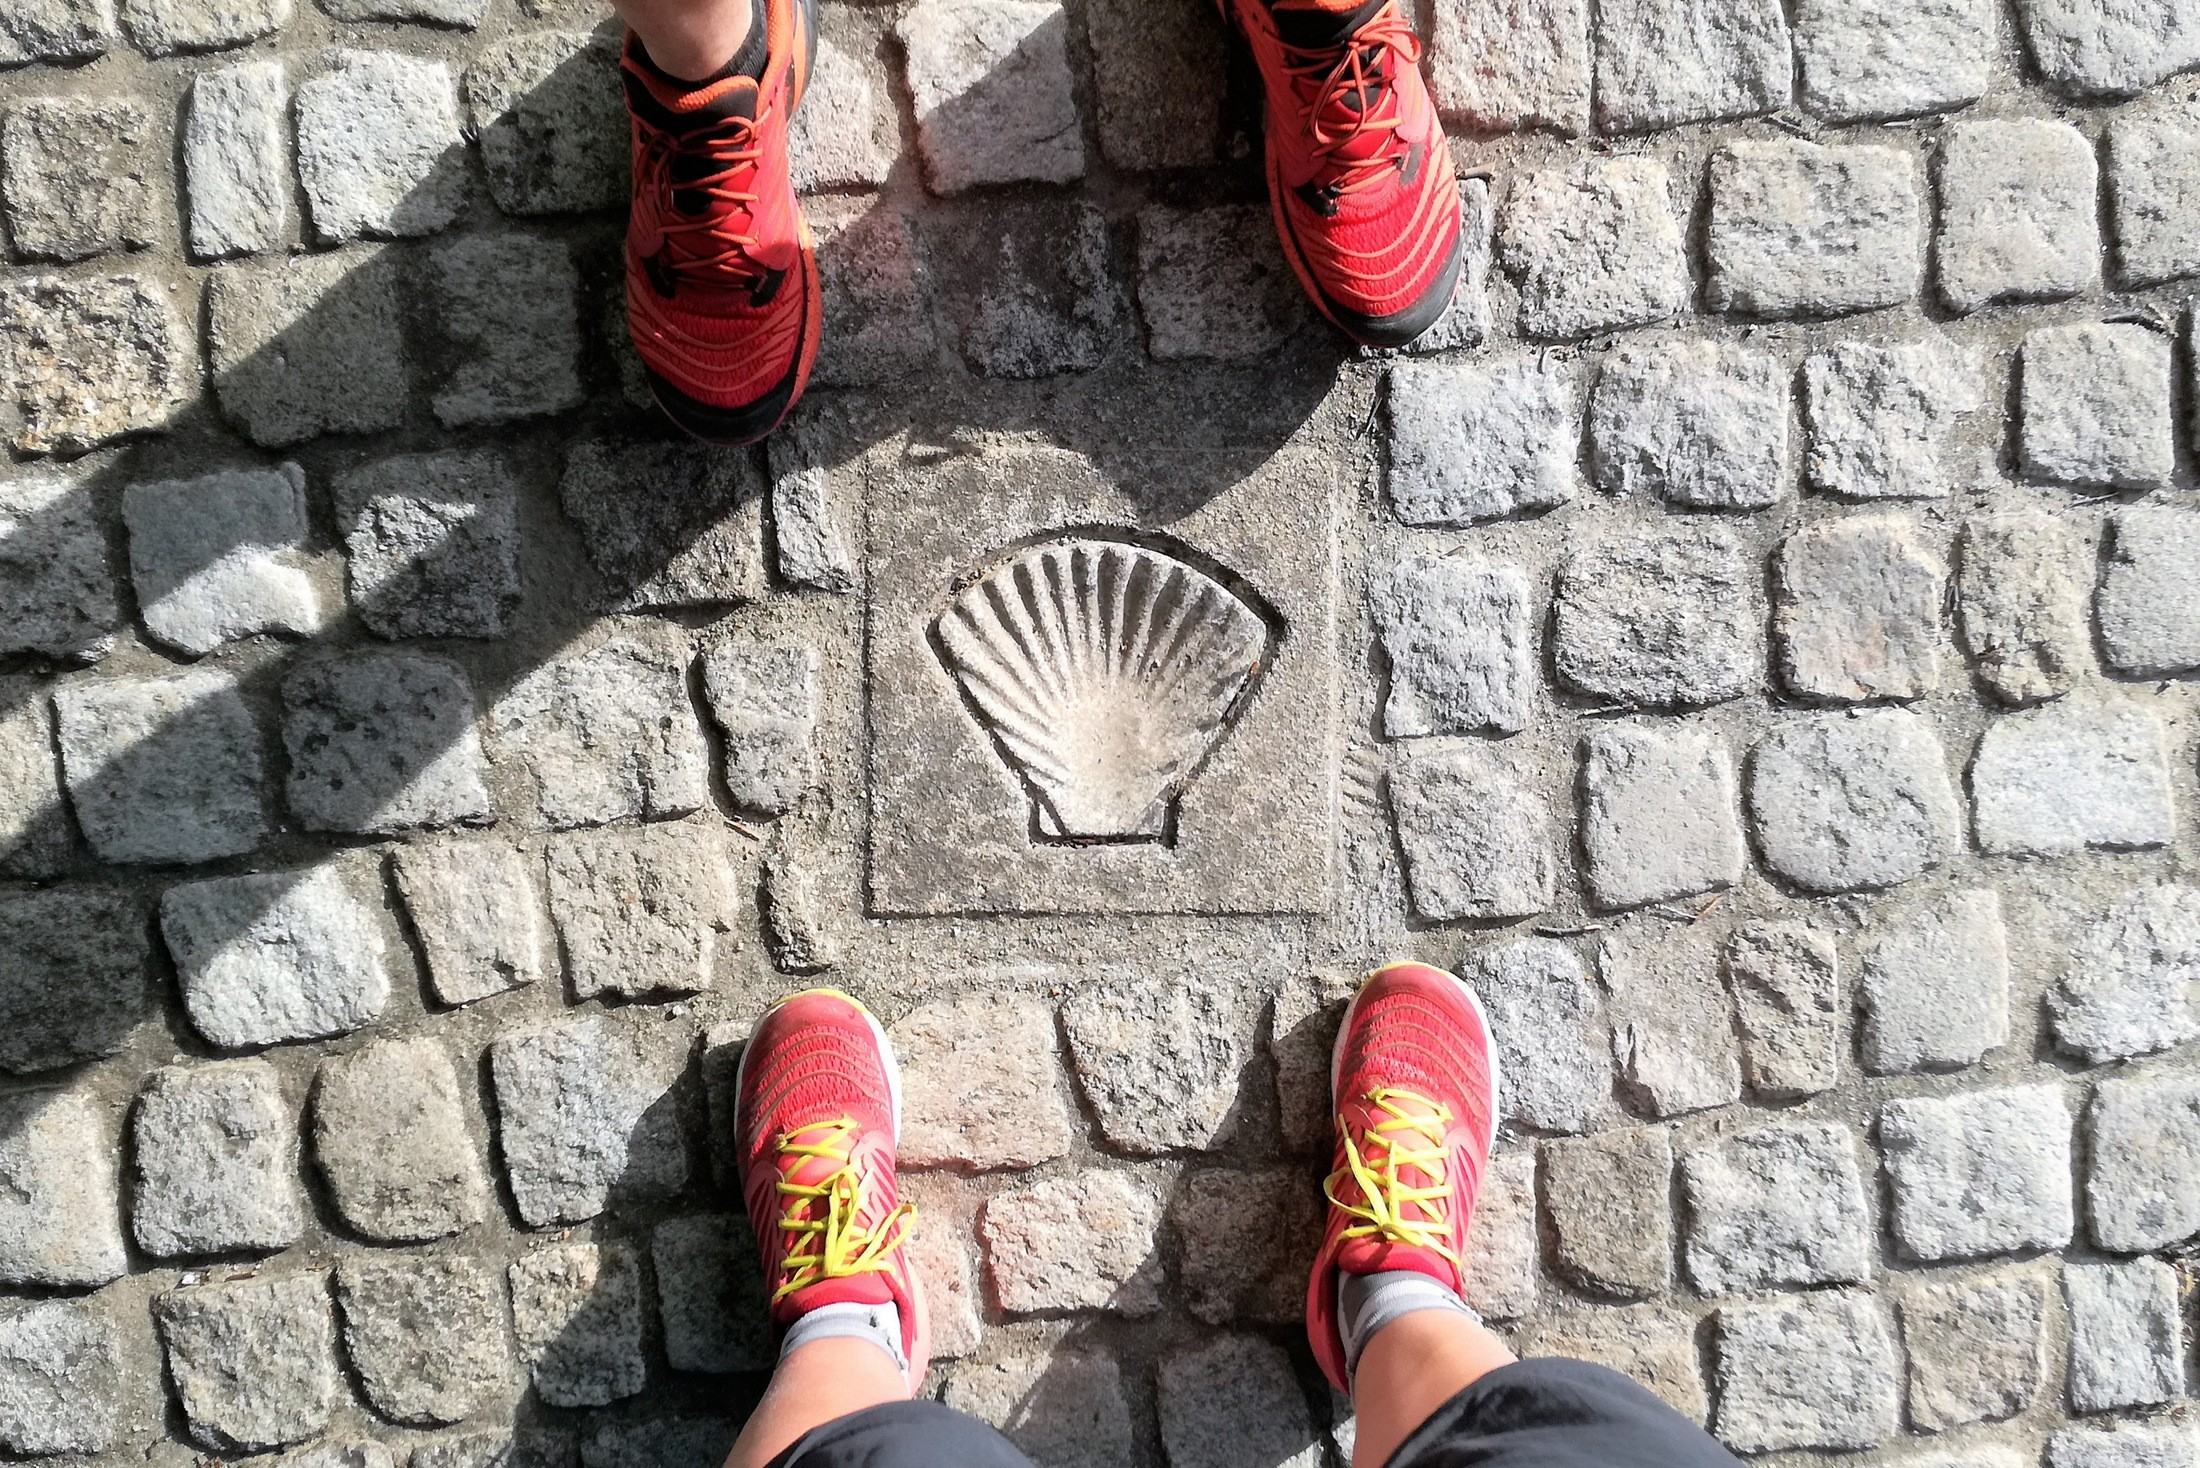 bcab1afa9 Camino de Santiago: different routes, one destination | La Sportiva®